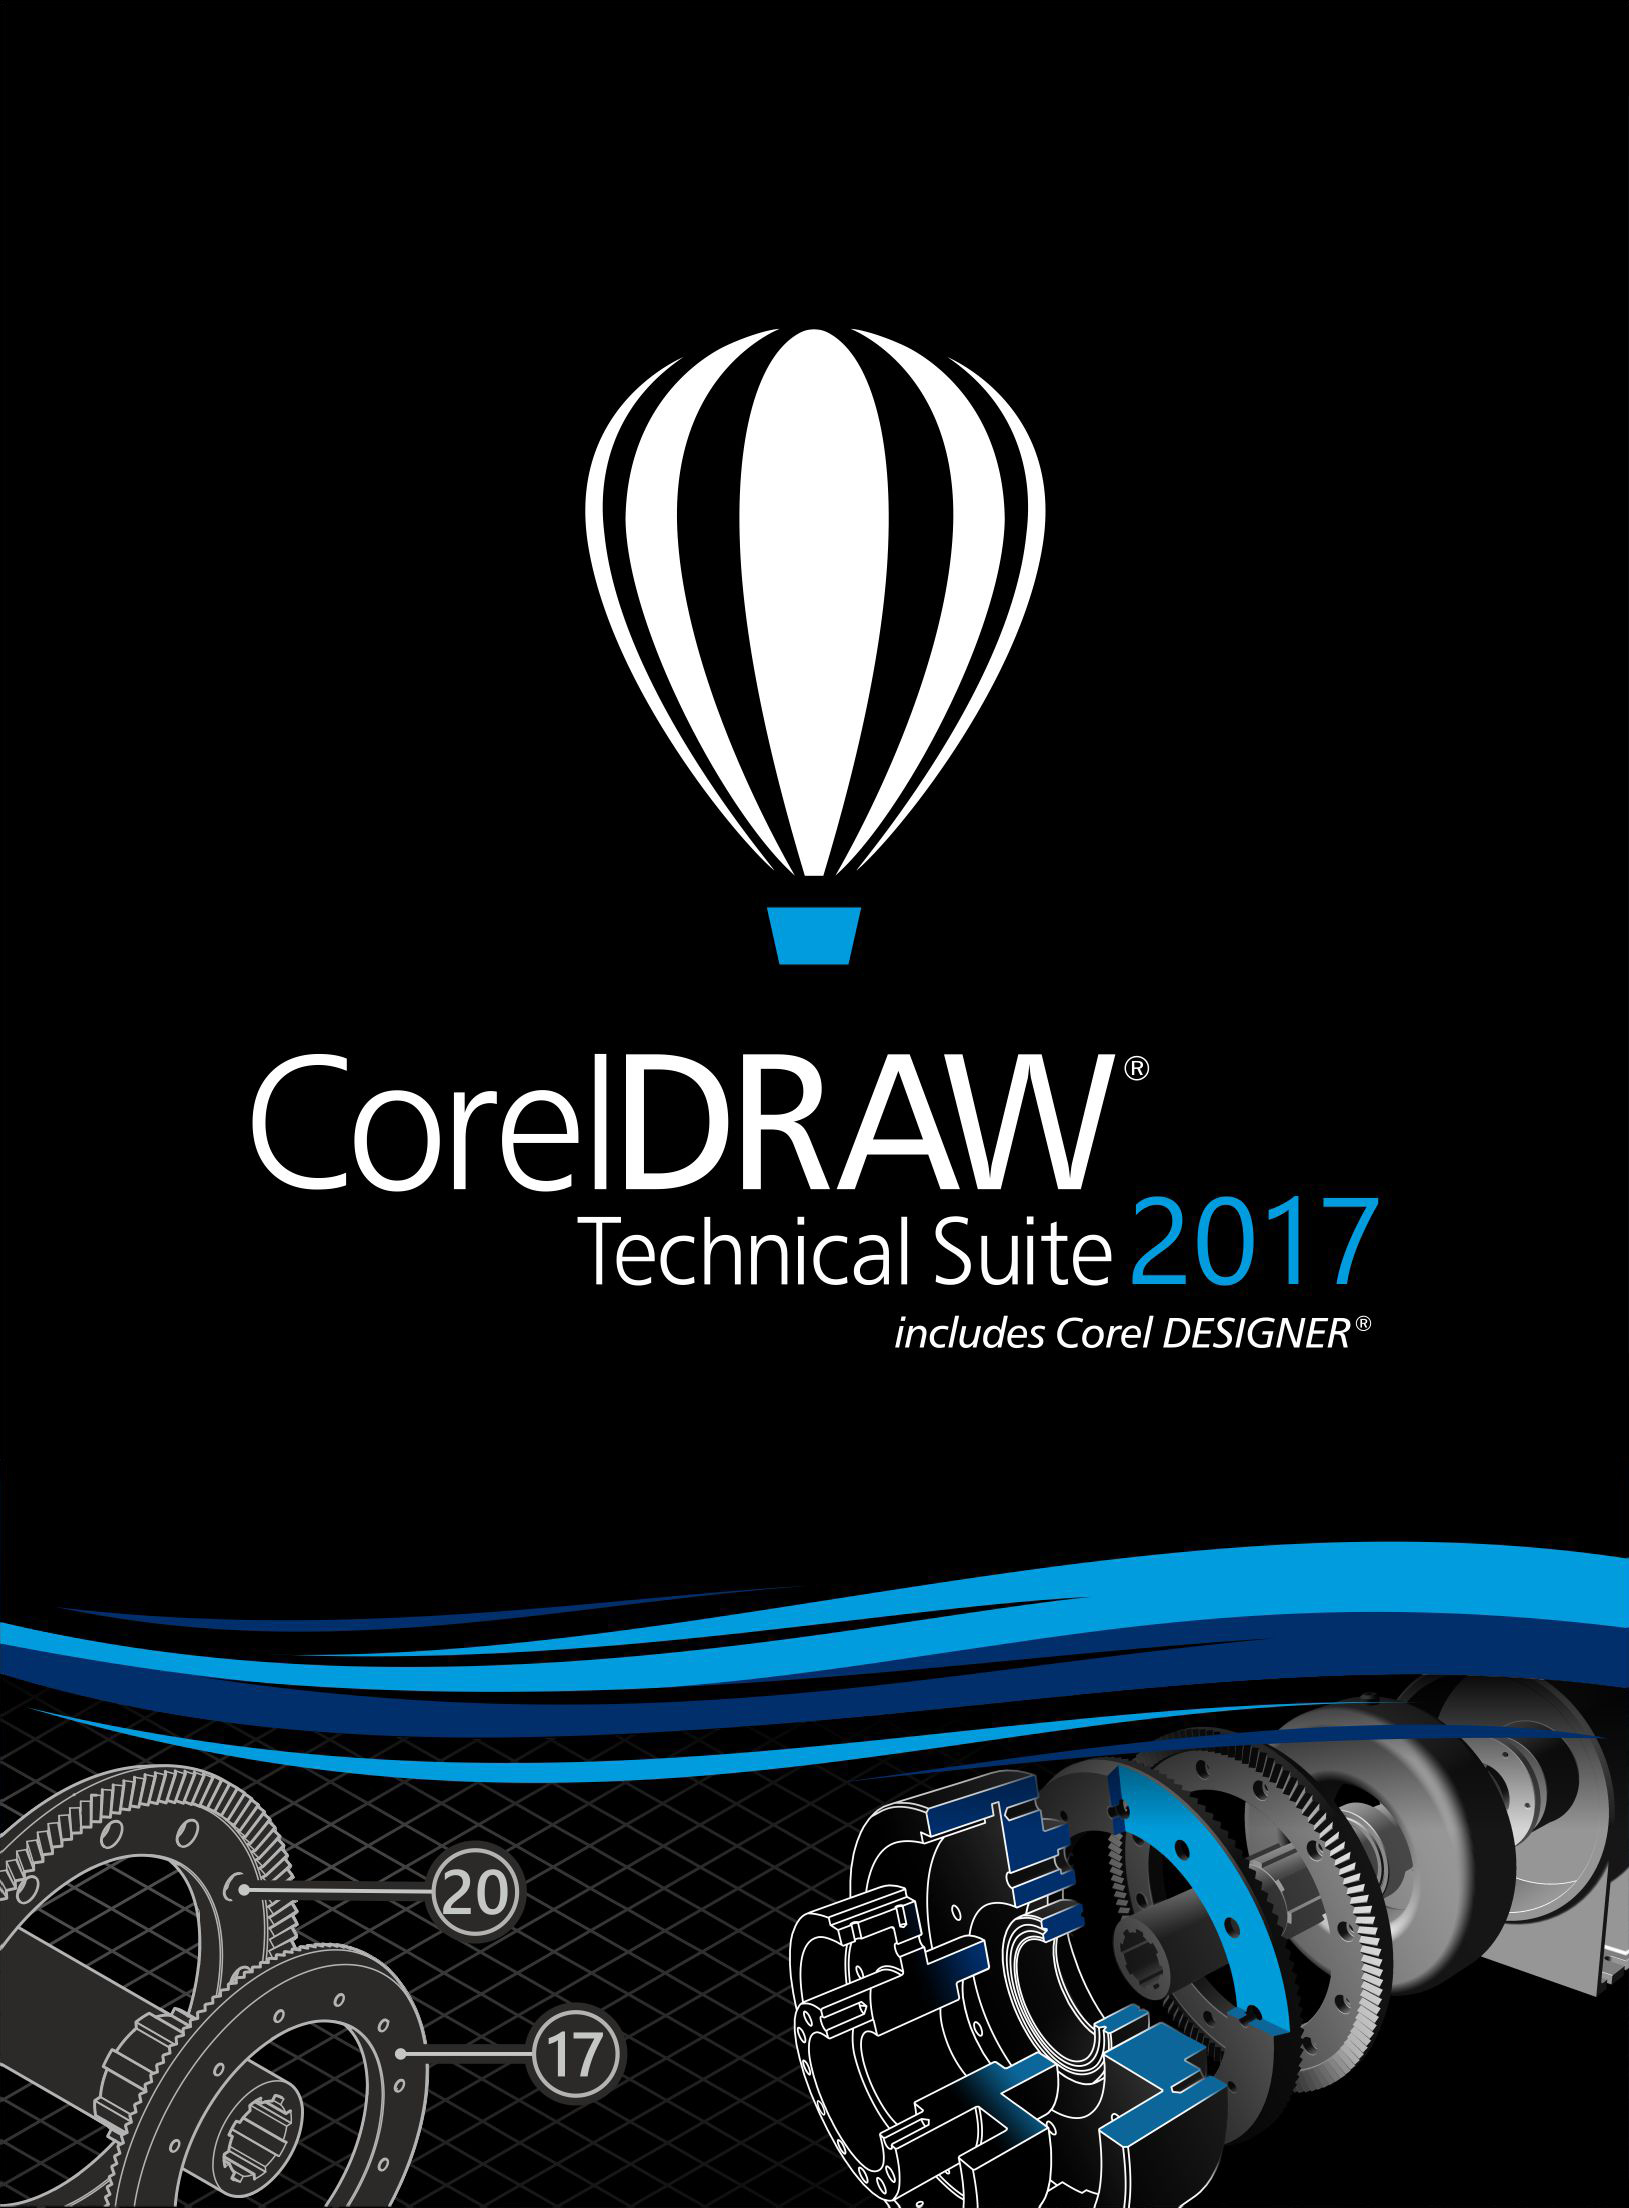 CorelDRAW Technical Suite 2017 [DOWNLOAD] by Corel